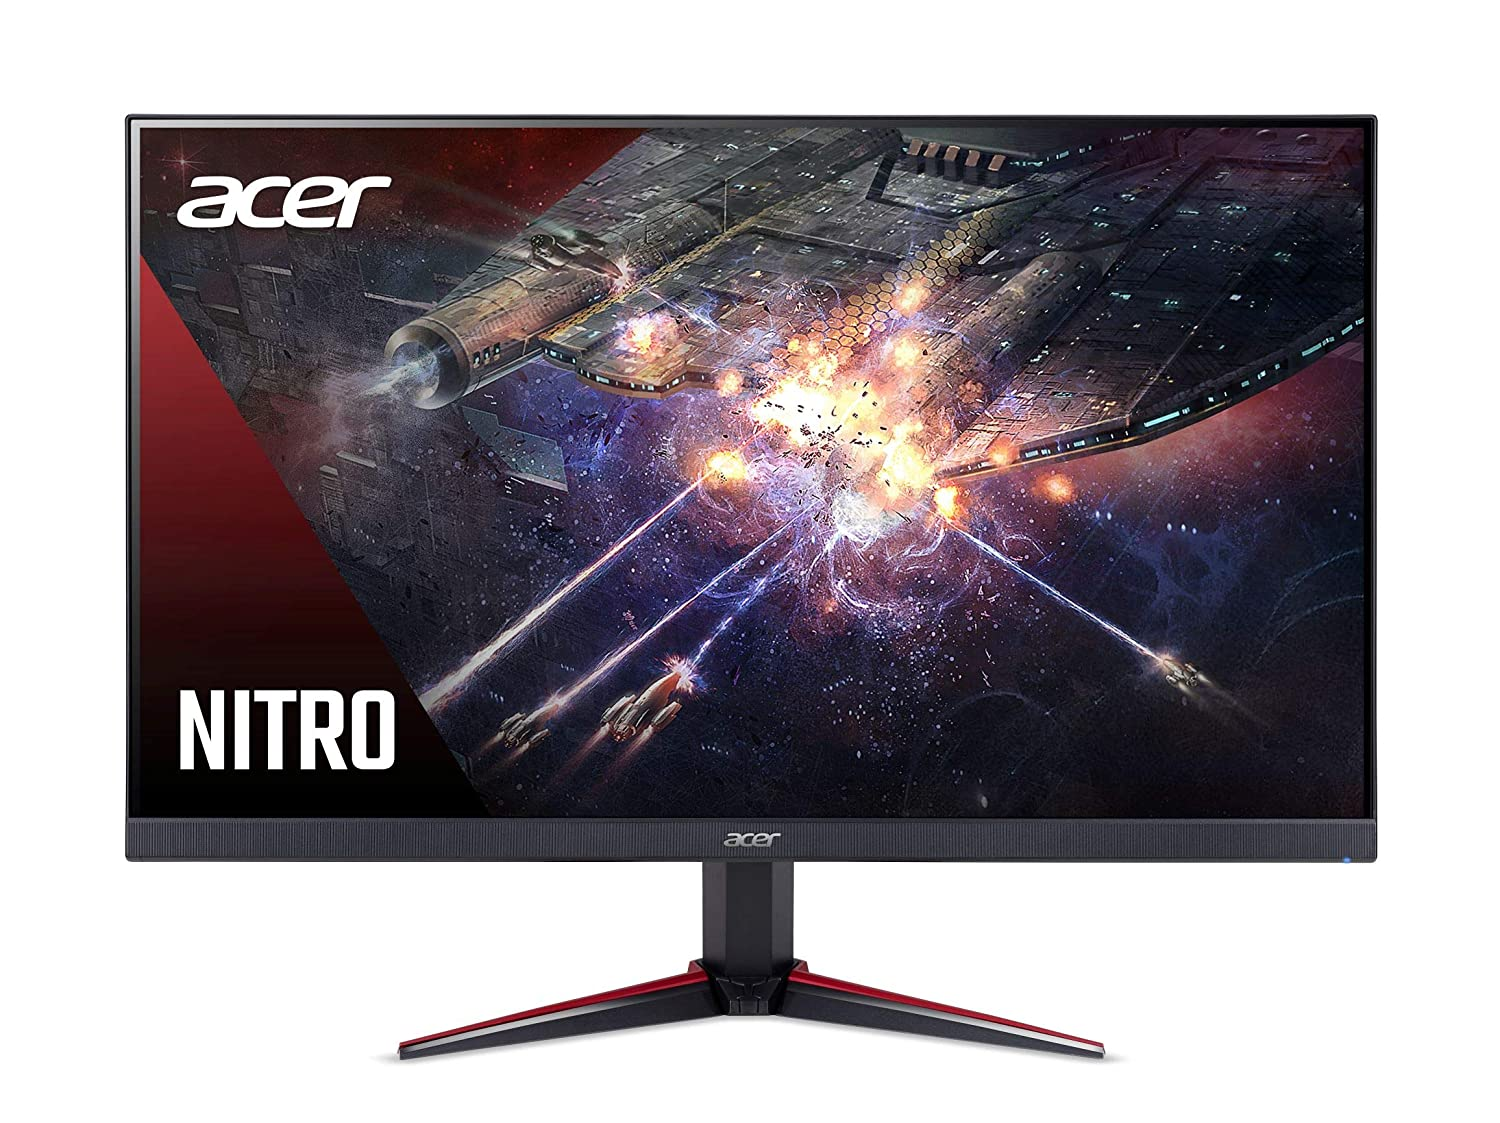 Acer Nitro 23.8 inch Full HD 1920 x 1080-0.1 MS Response Time - 165 Hz Refresh Rate IPS Gaming Monitor with AMD Radeon Free SYNC Technology -2 X HDMI 1 X Display Port